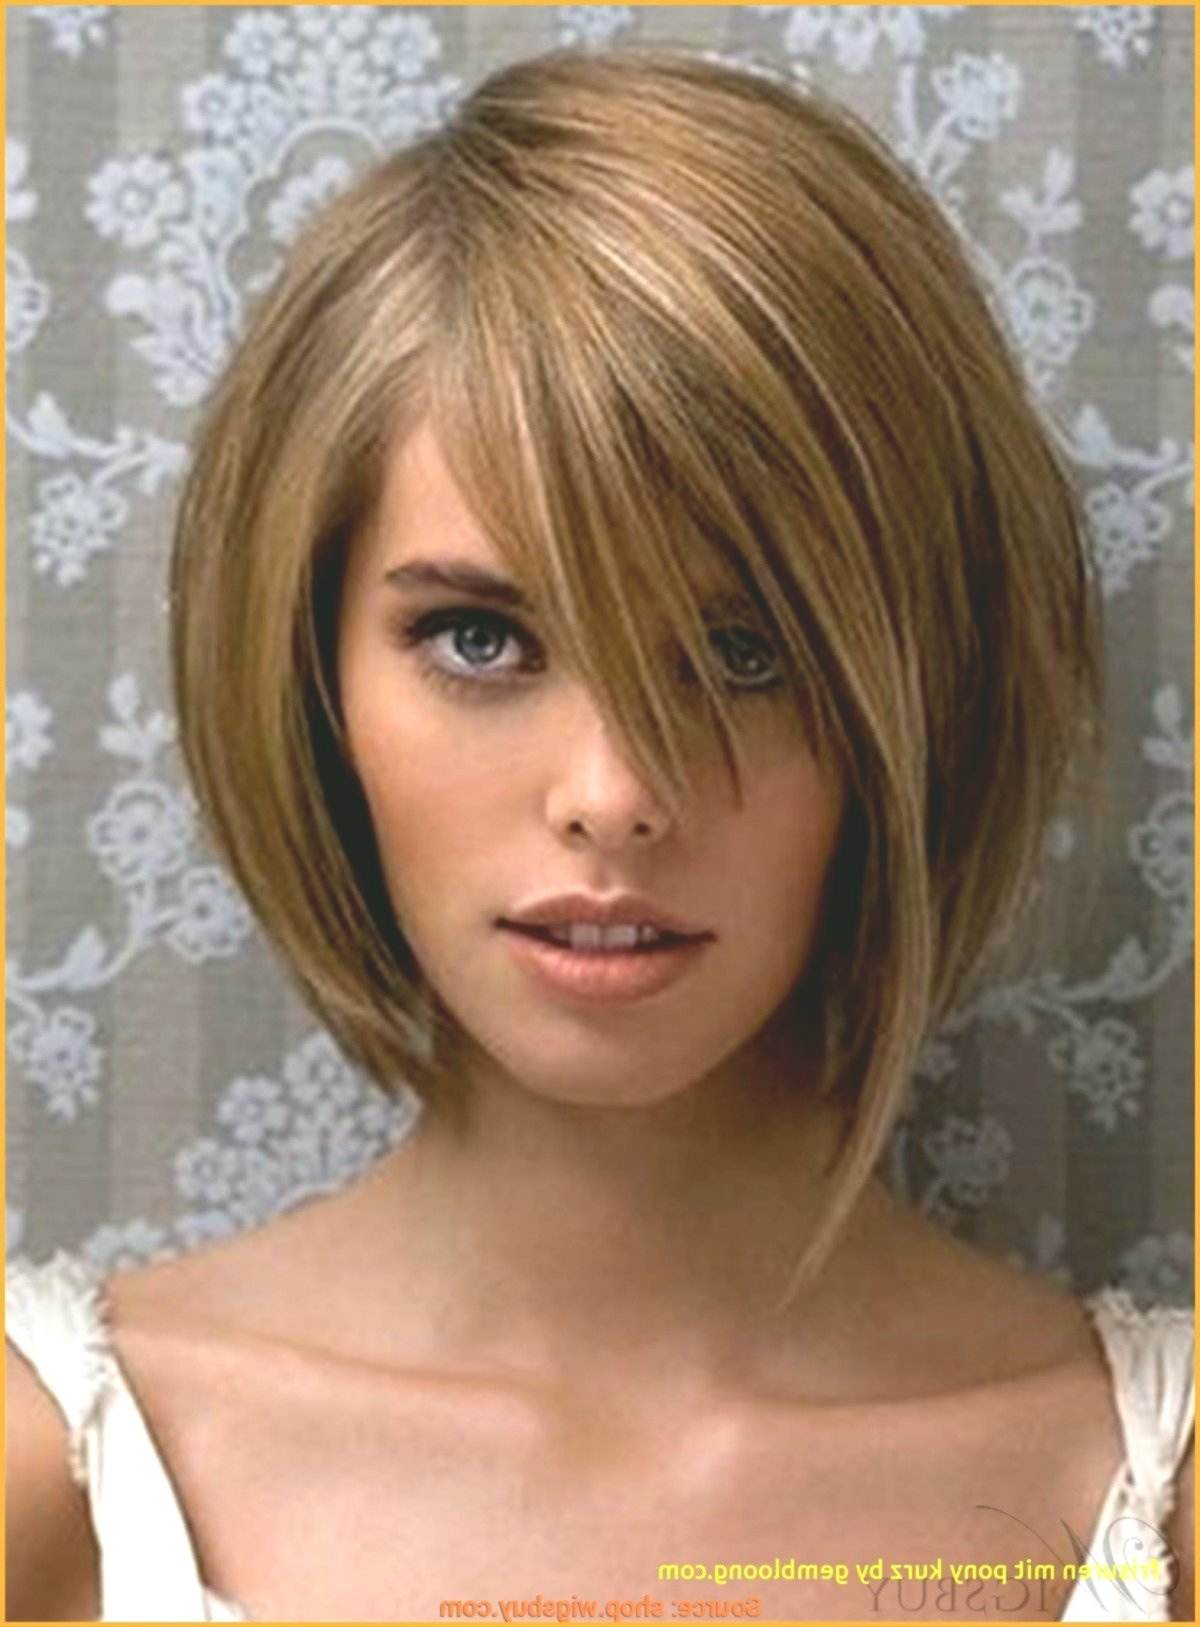 Excellent shoulder-length blonde hair plan-Charming shoulder-length blonde hair model